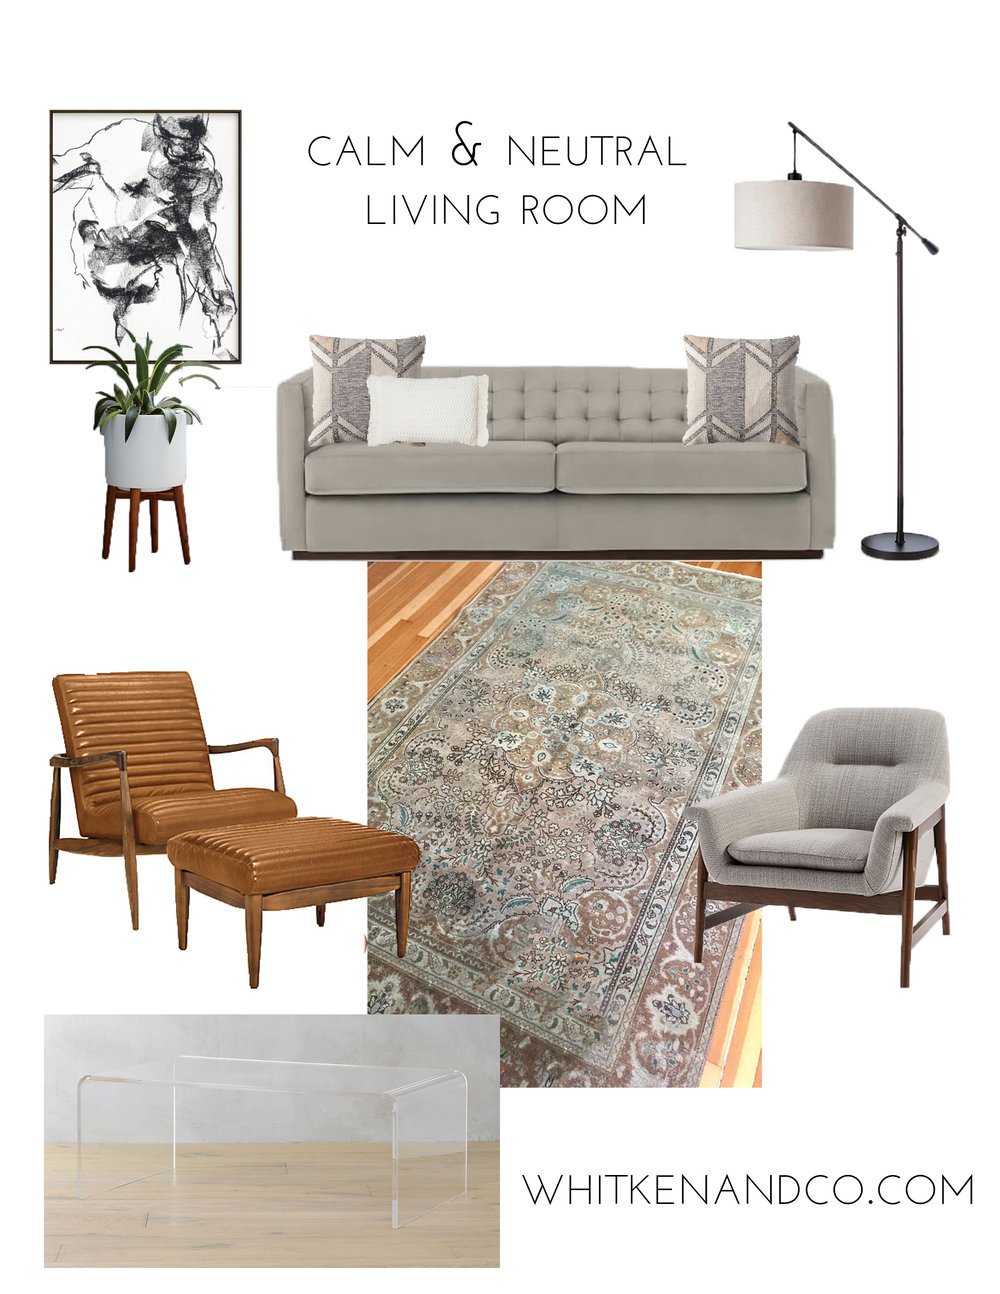 Calm & Neutral Living Room